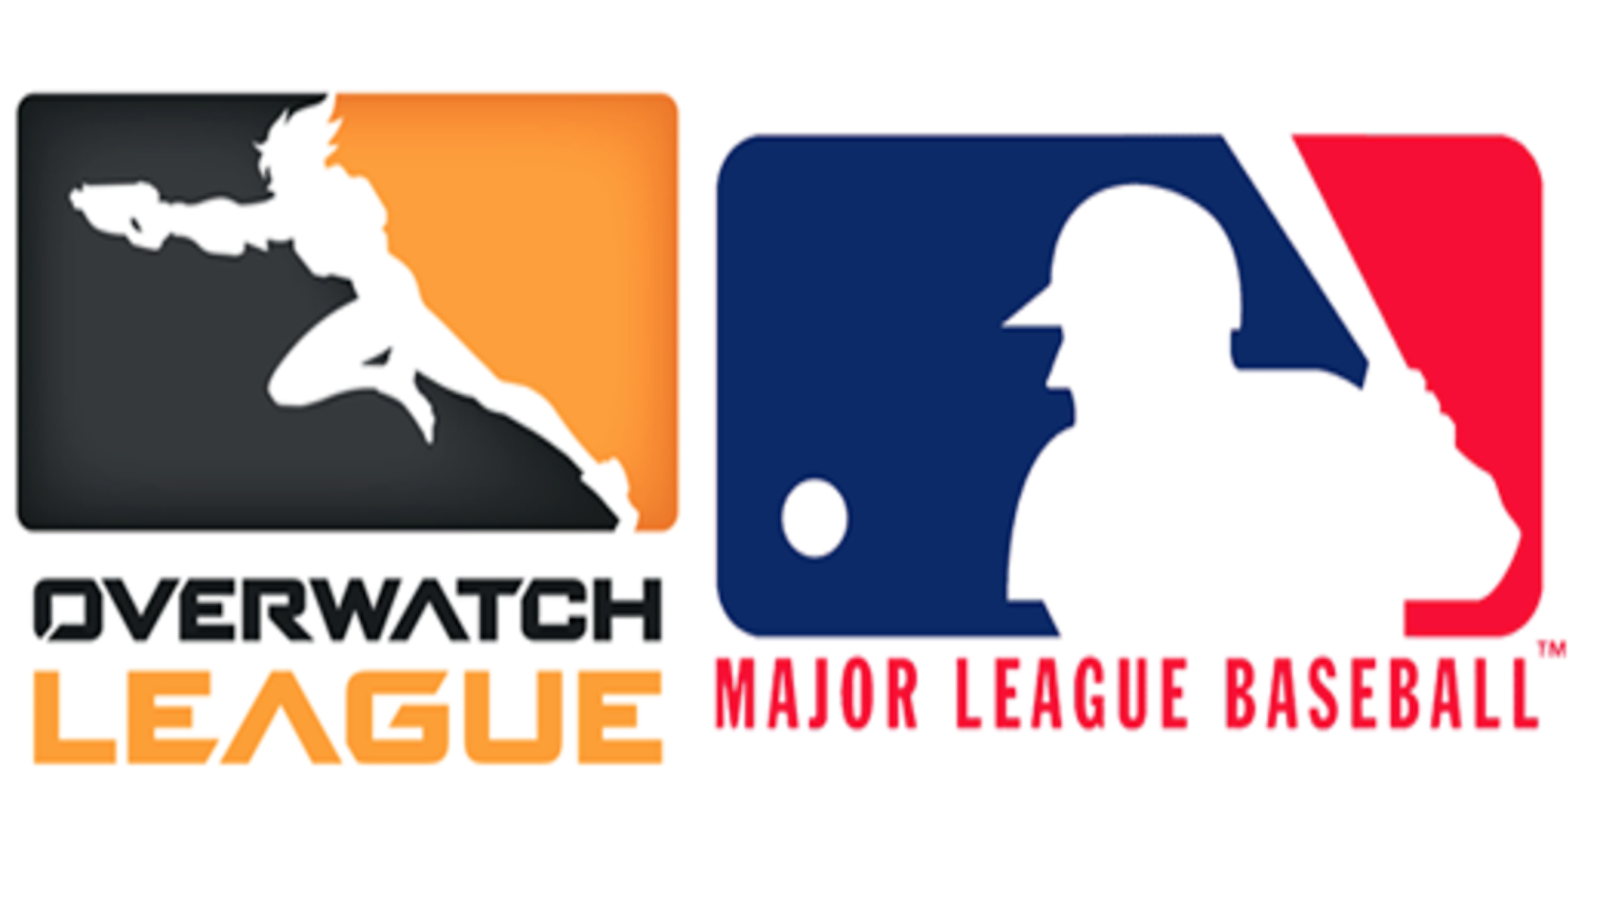 Report Mlb Considers Trademark Dispute With Overwatch League Over